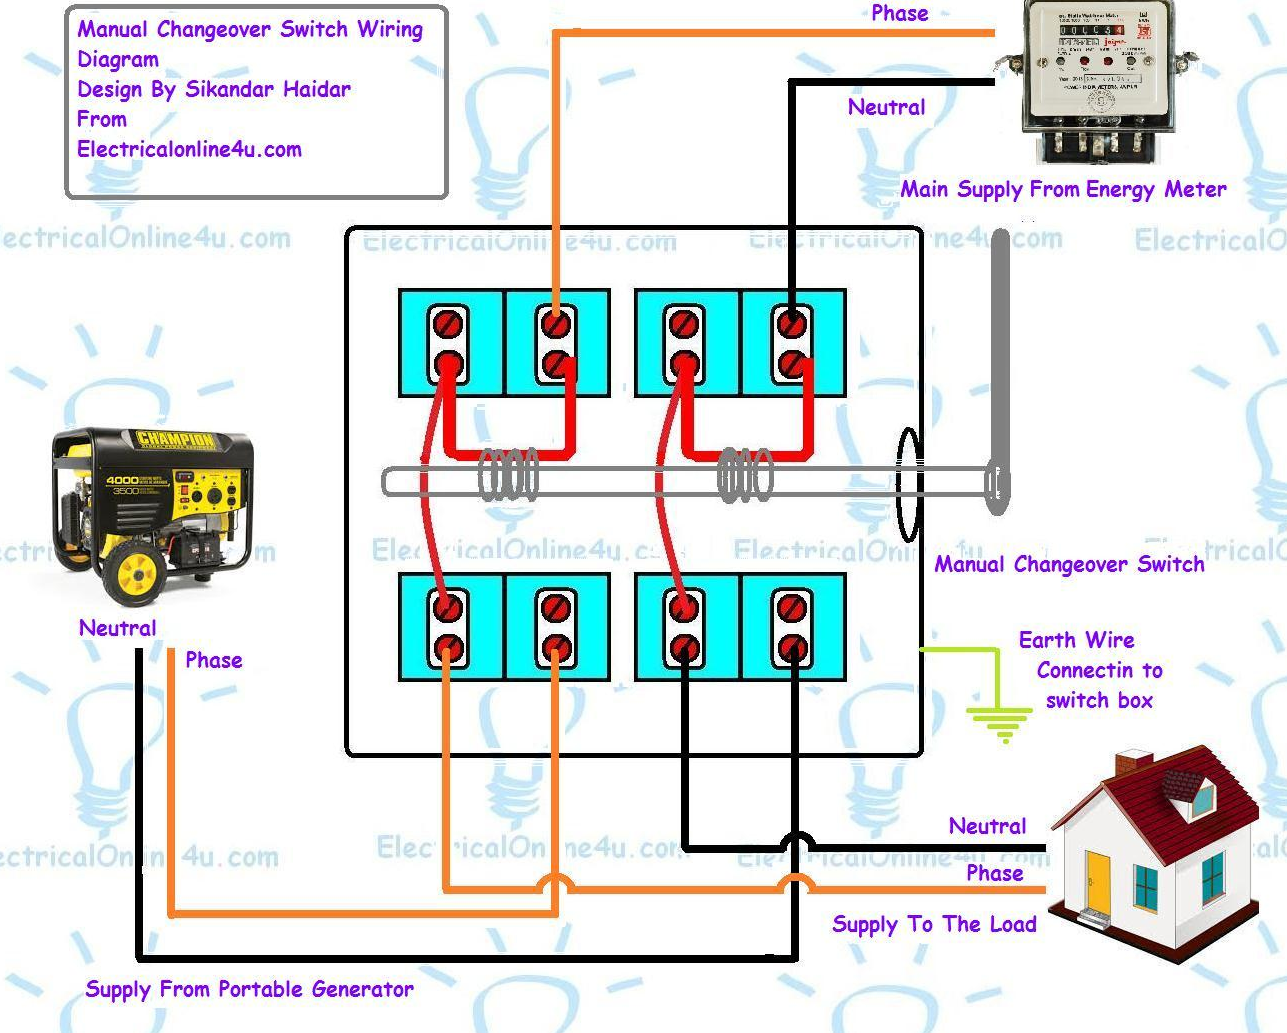 manual changeover switch wiring diagram for portable generator manual changeover switch wiring diagram